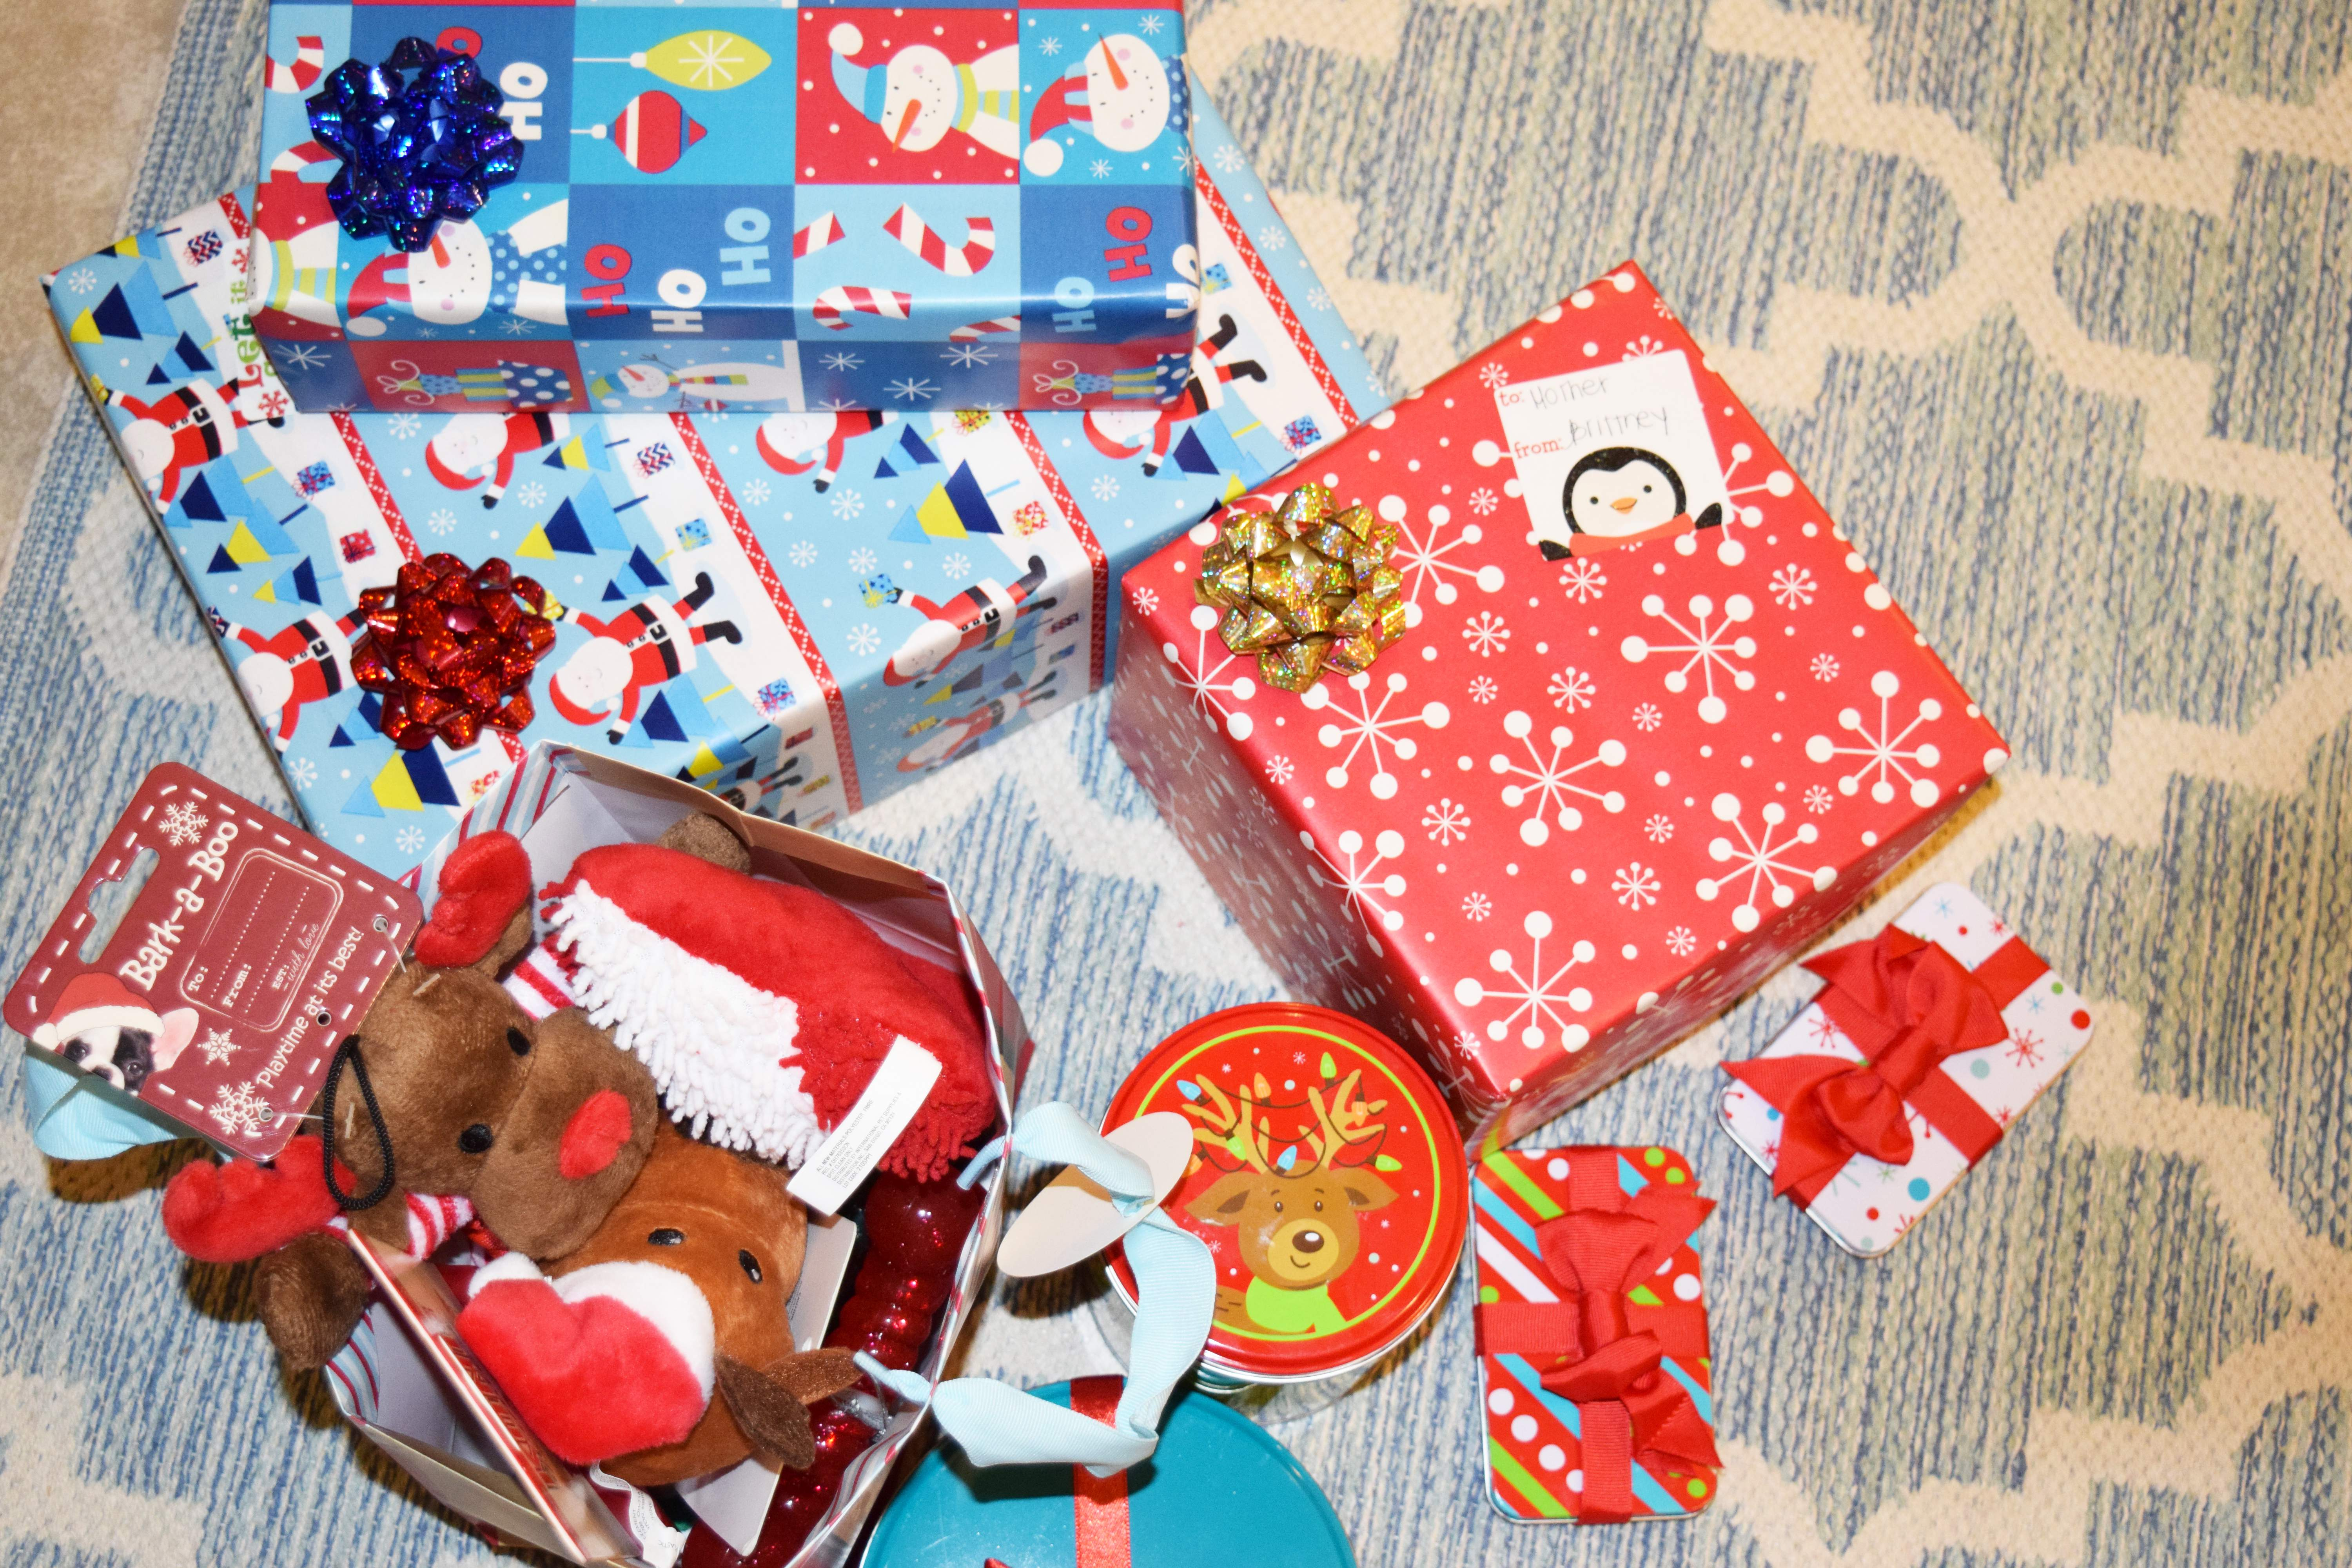 GIFTS WRAPPED